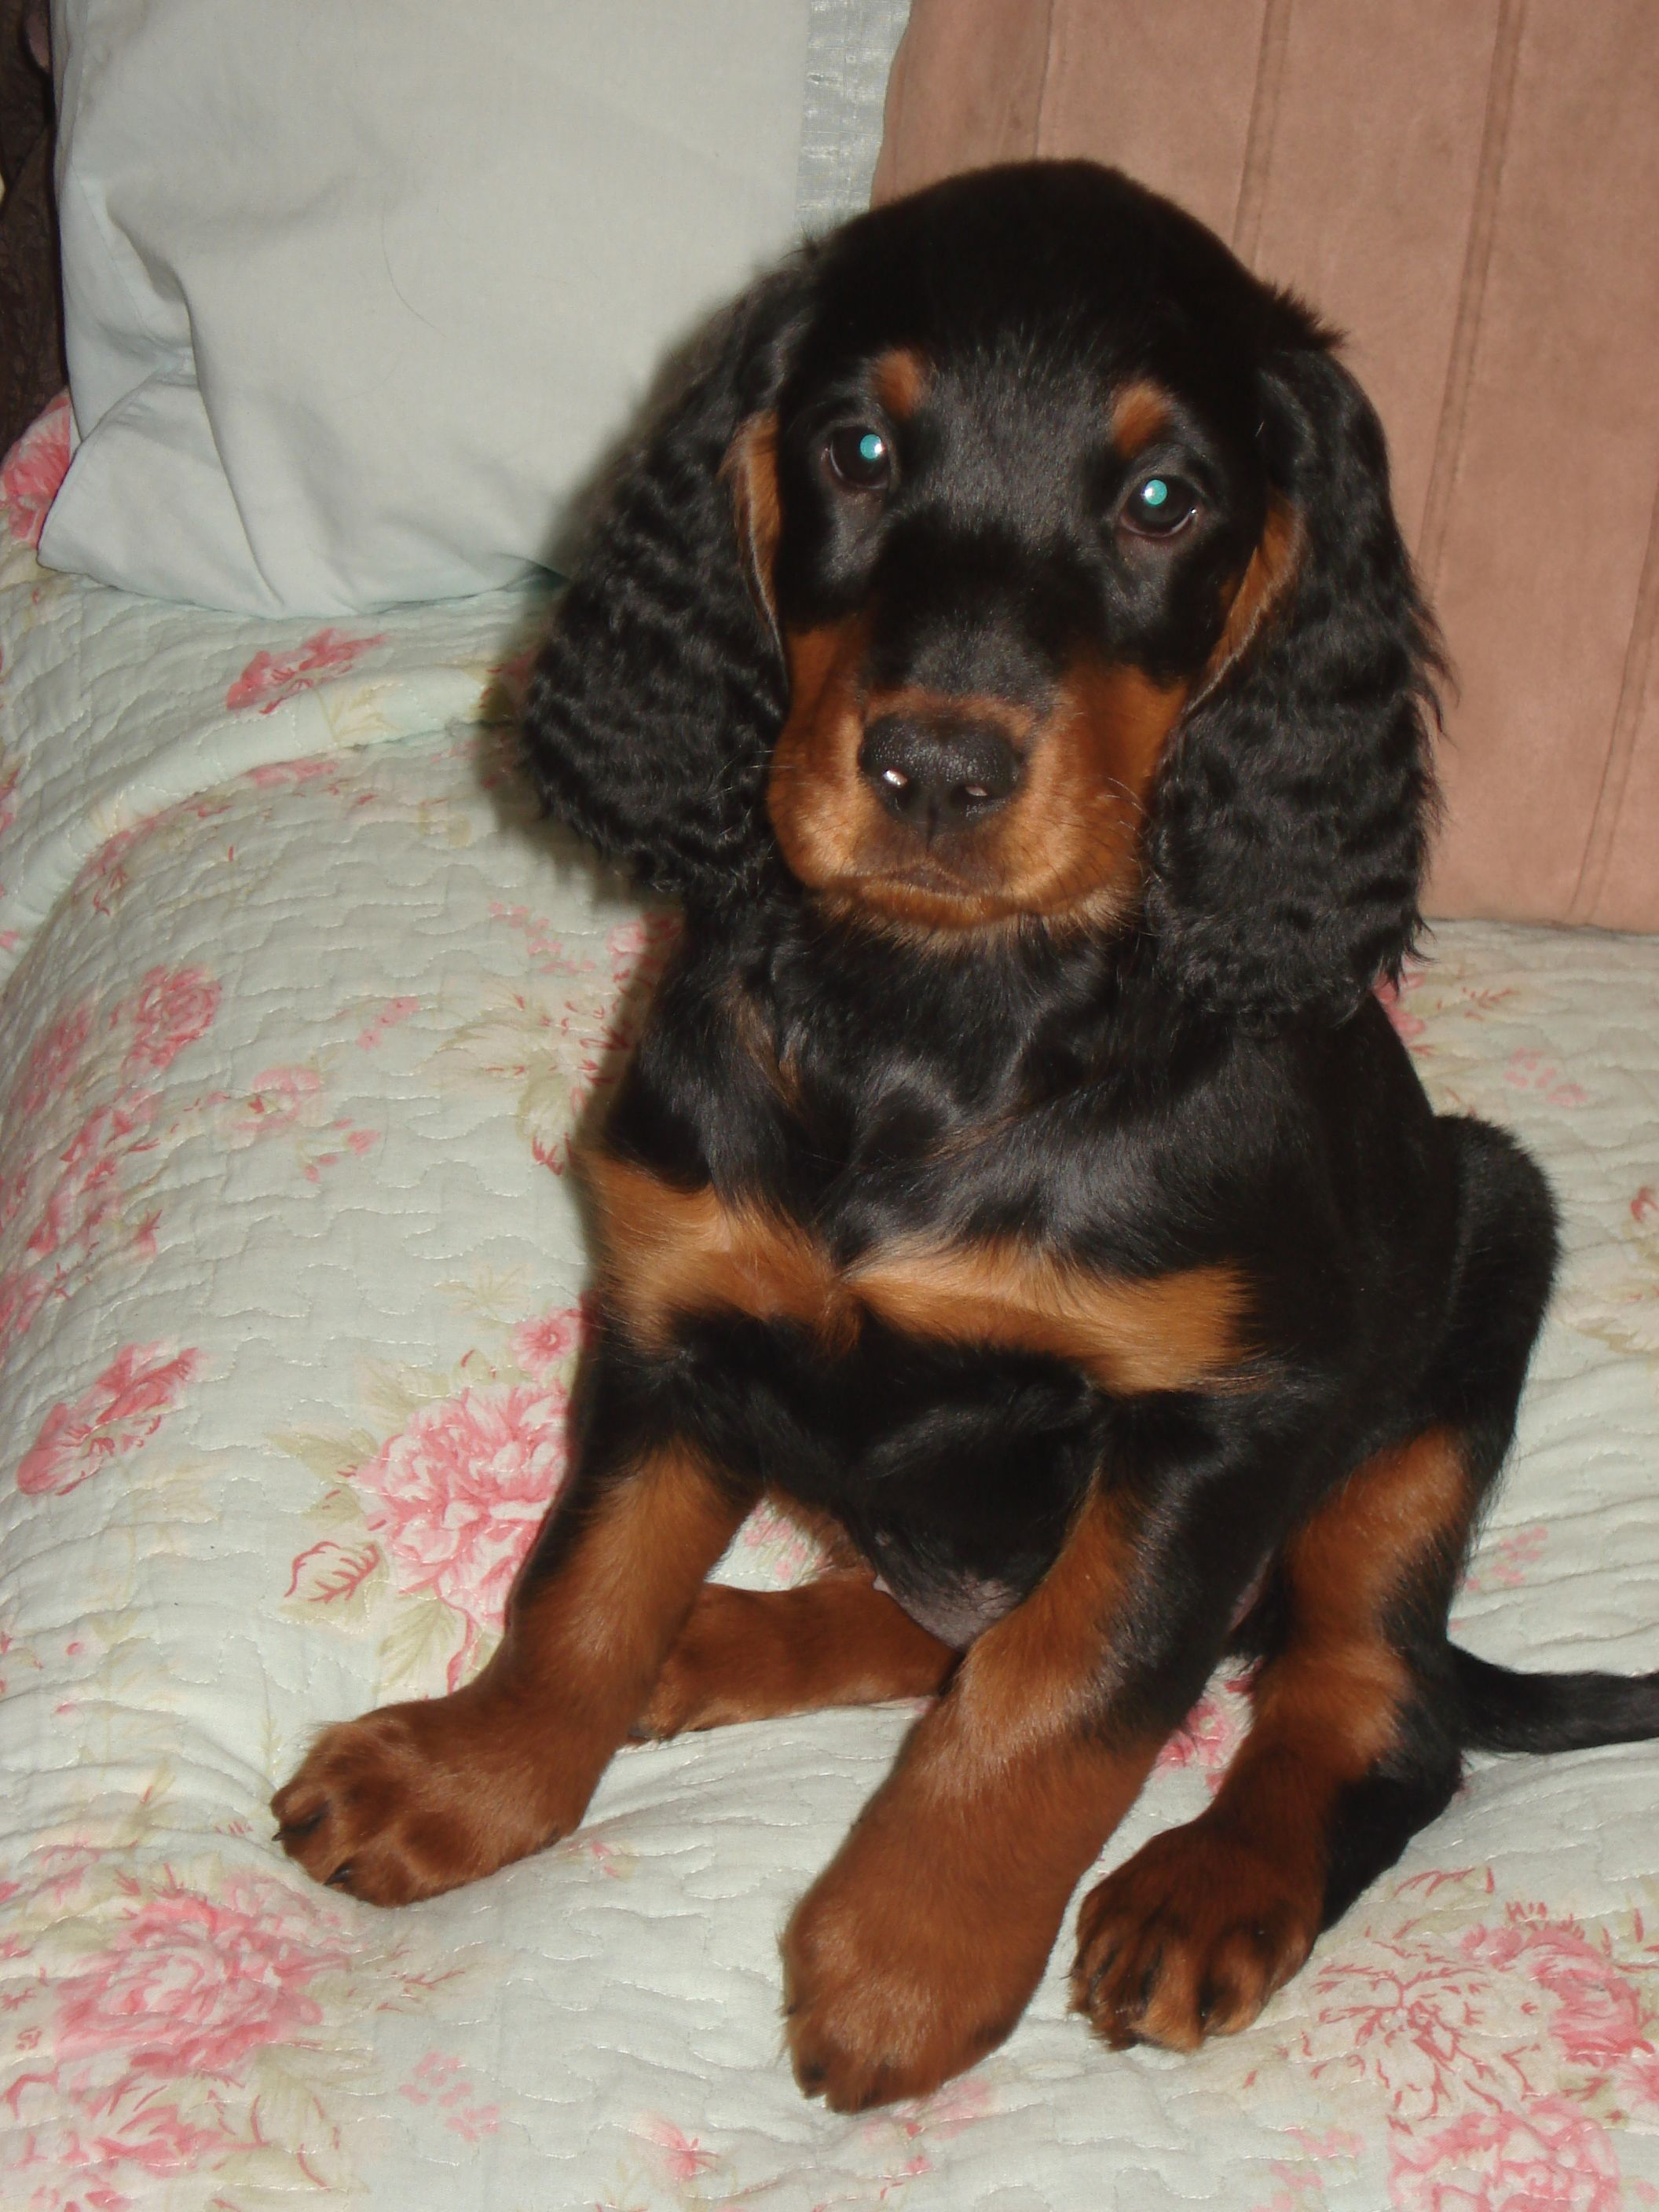 Rosie Our New Gordon Setter Puppy Looking Cute At 8 Weeks Old